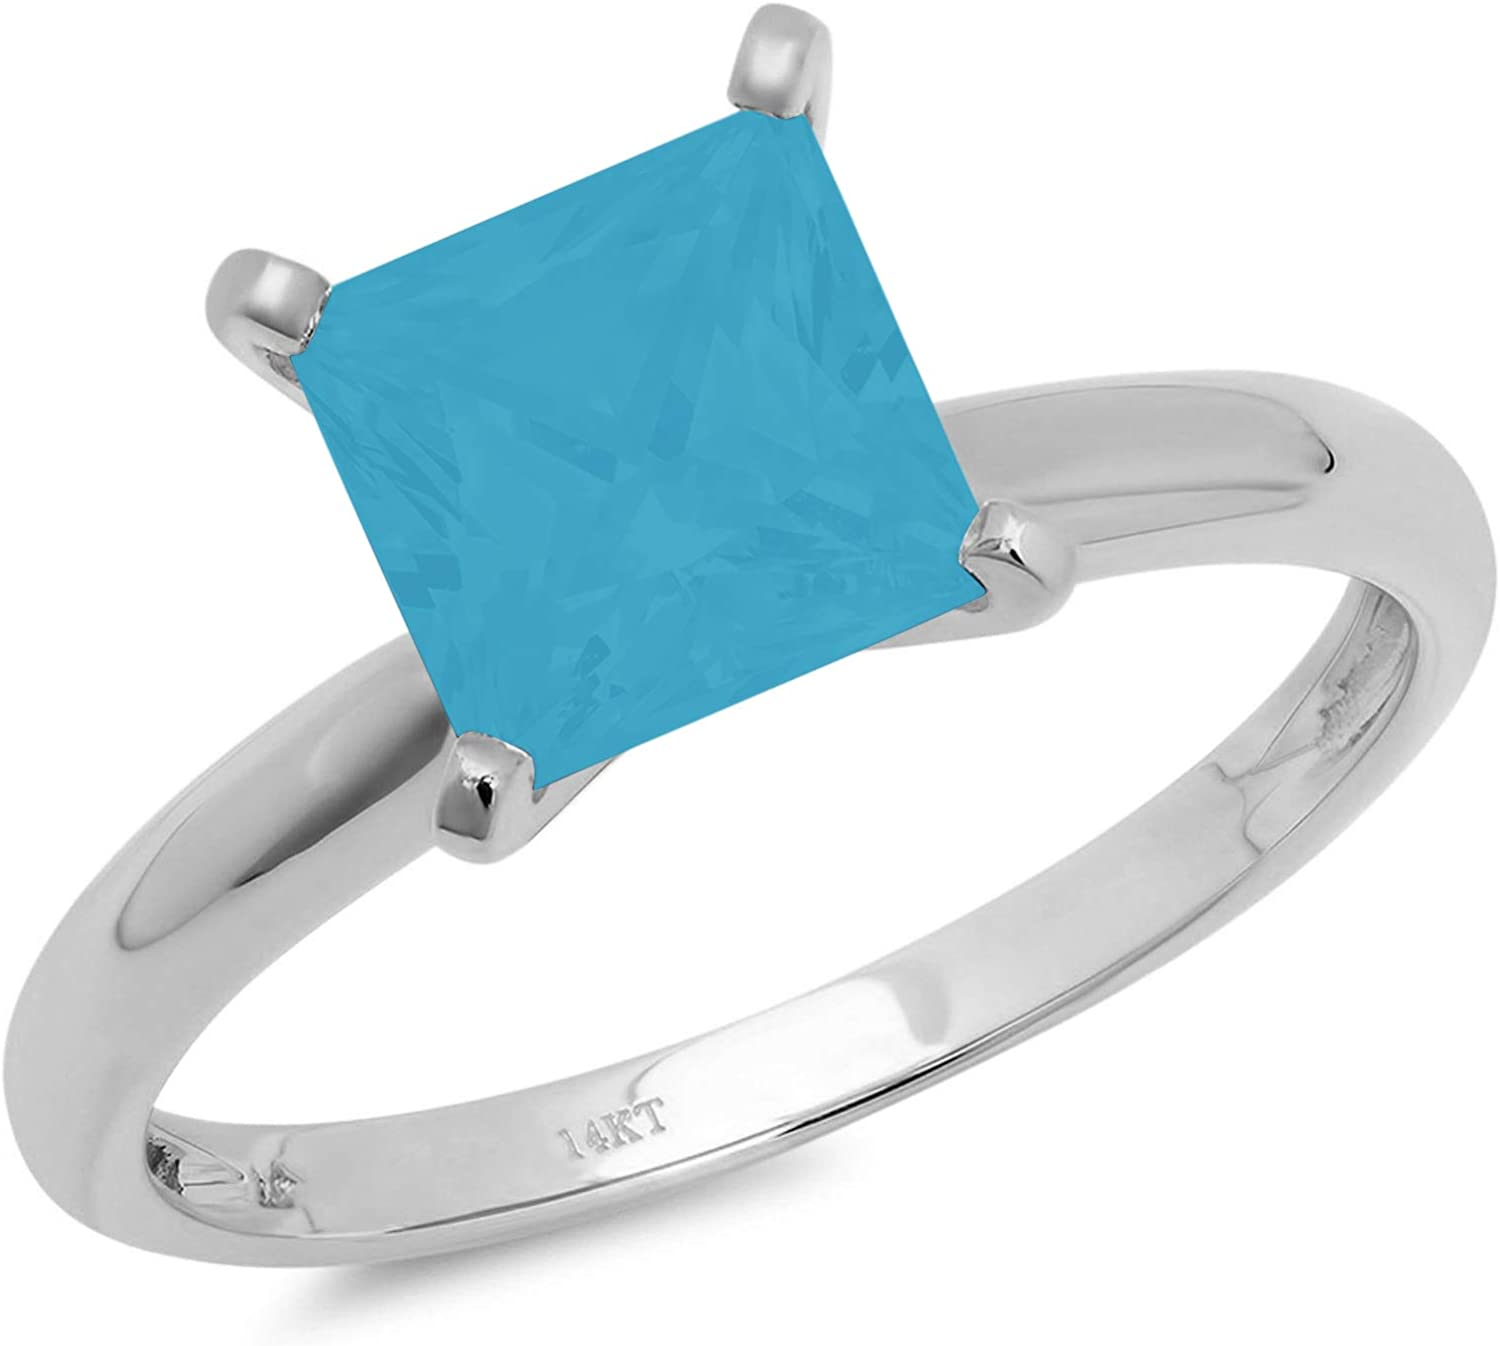 0.9ct Brilliant Princess Cut Solitaire Flawless Simulated Cubic Zirconia Blue Turquoise Ideal 4-Prong Engagement Wedding Bridal Promise Anniversary Designer Ring Solid 14k White Gold for Women